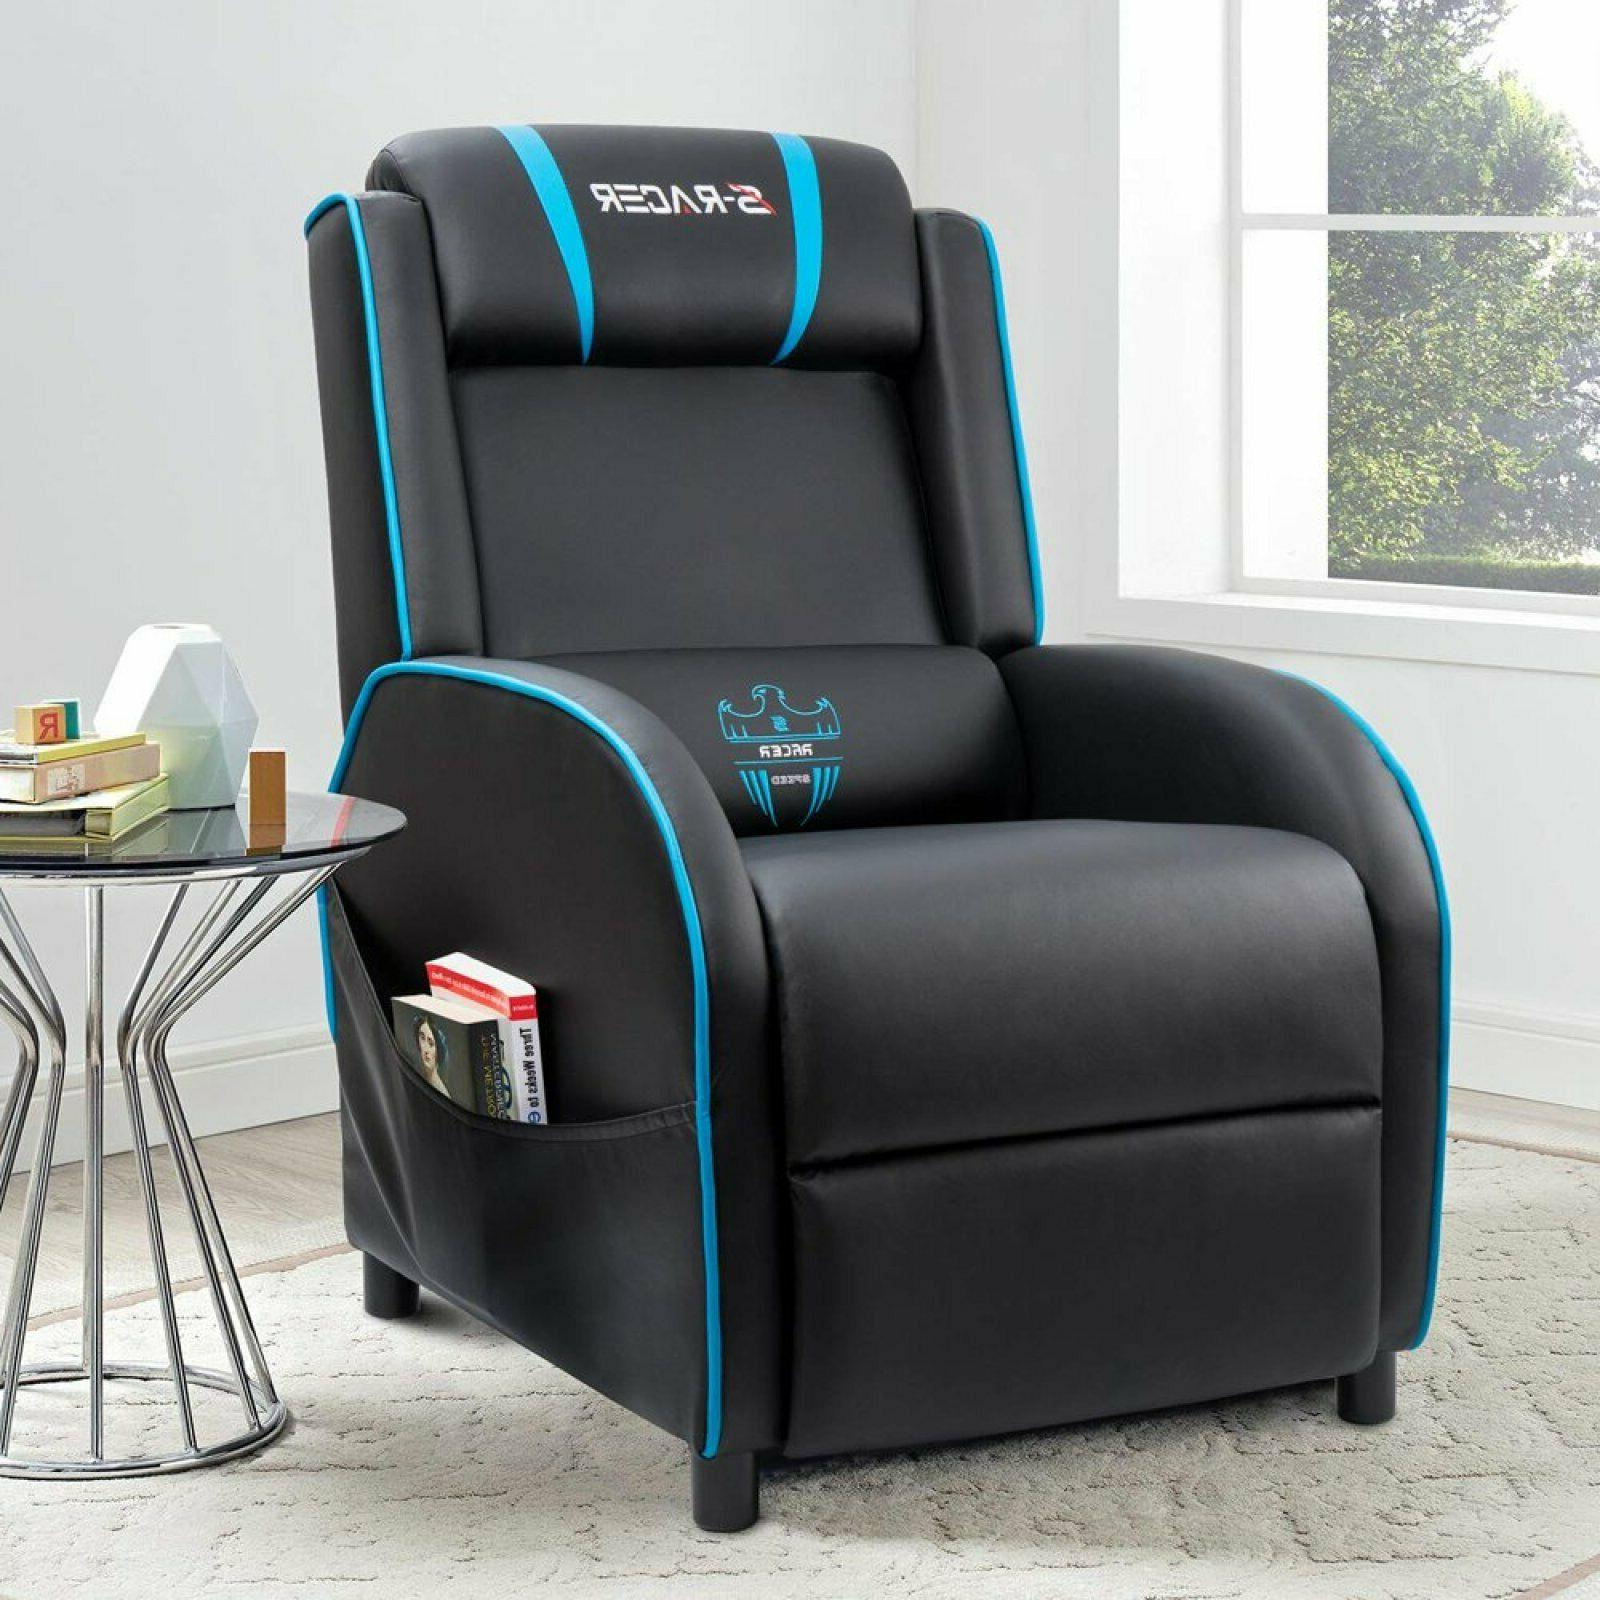 Homall Gaming Recliner Chair with PU Leather, Black/Blue